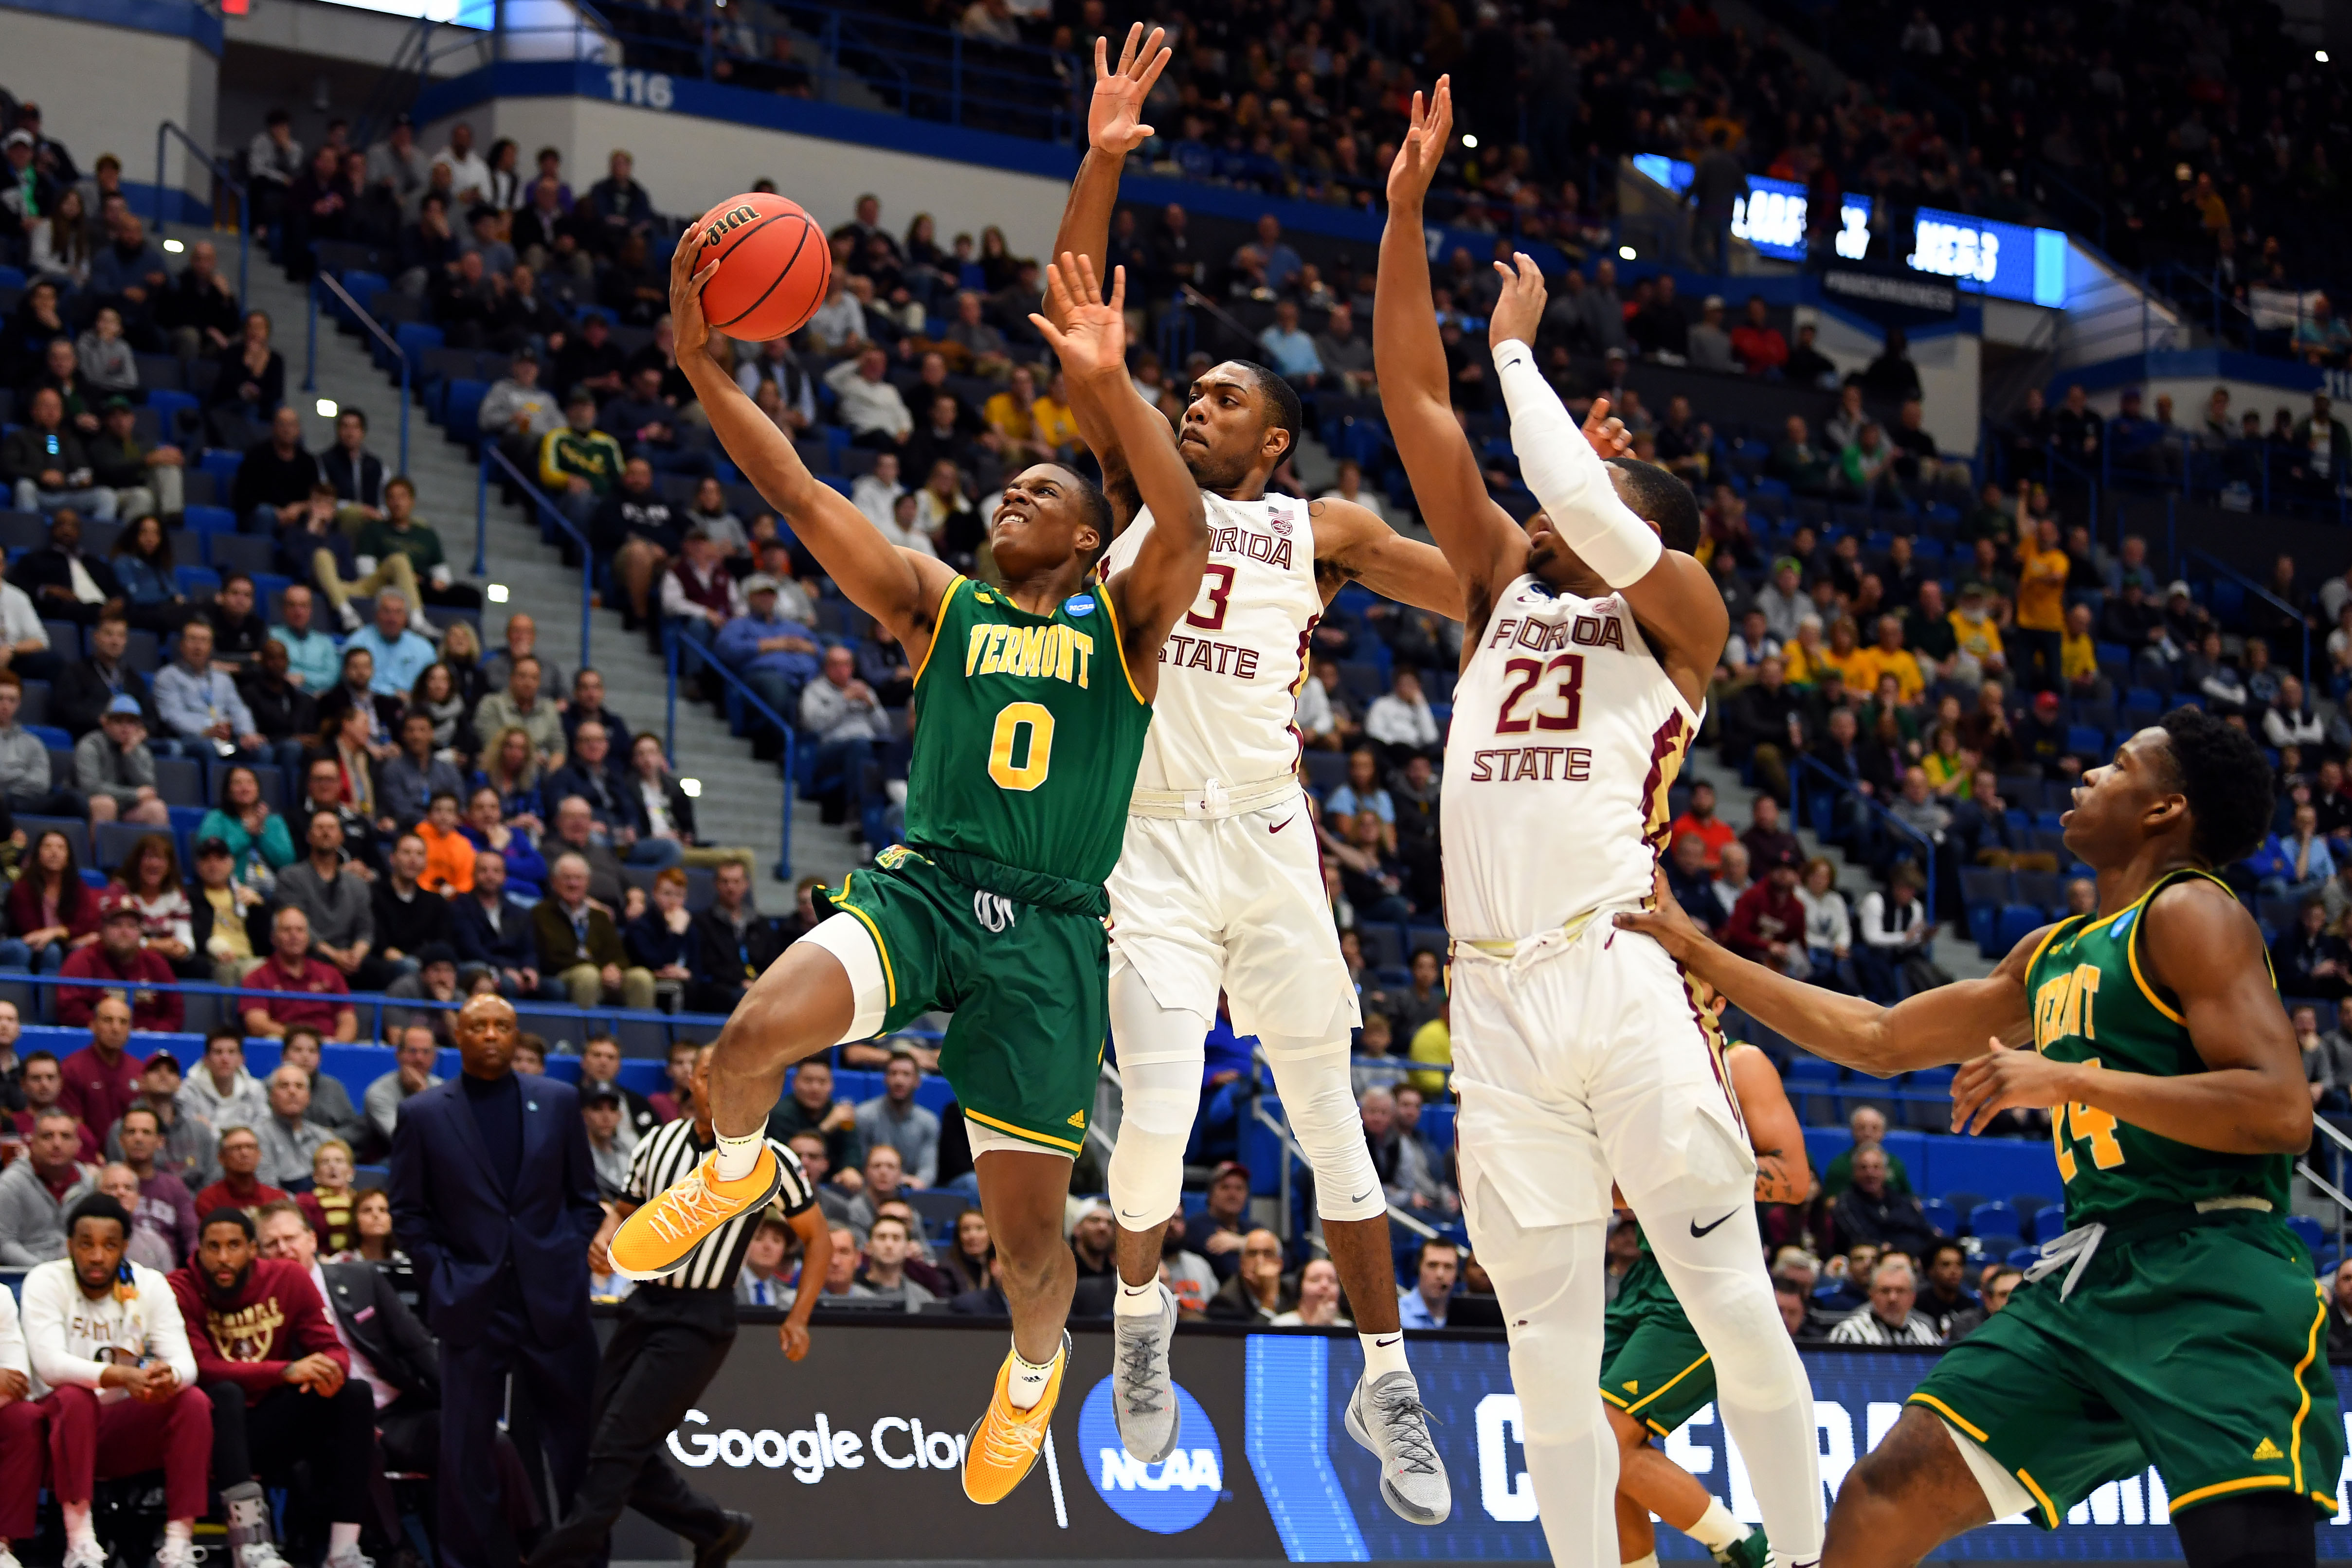 These Are the Best Photos From the 2019 NCAA Tournament